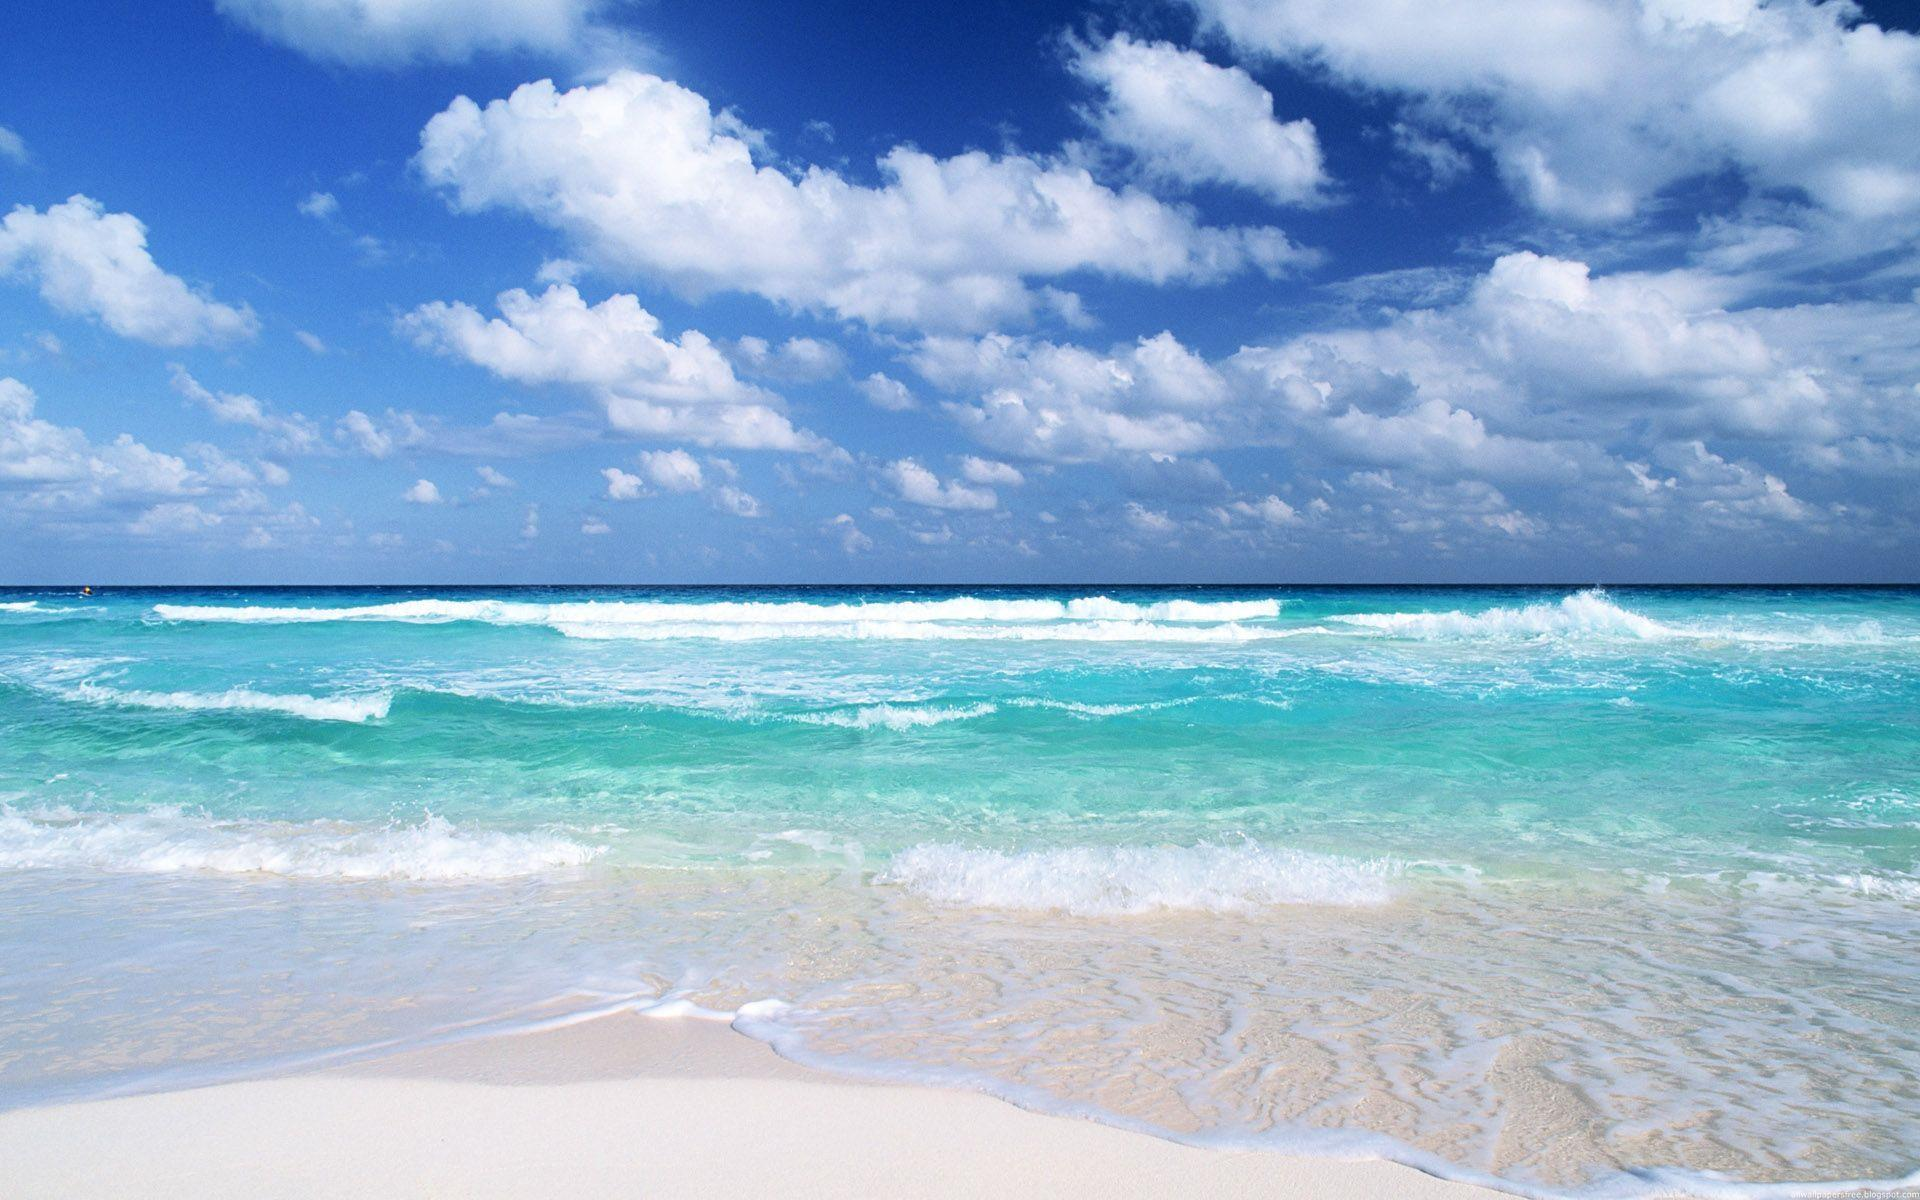 la-plage-de-reves-wallpapers-hd